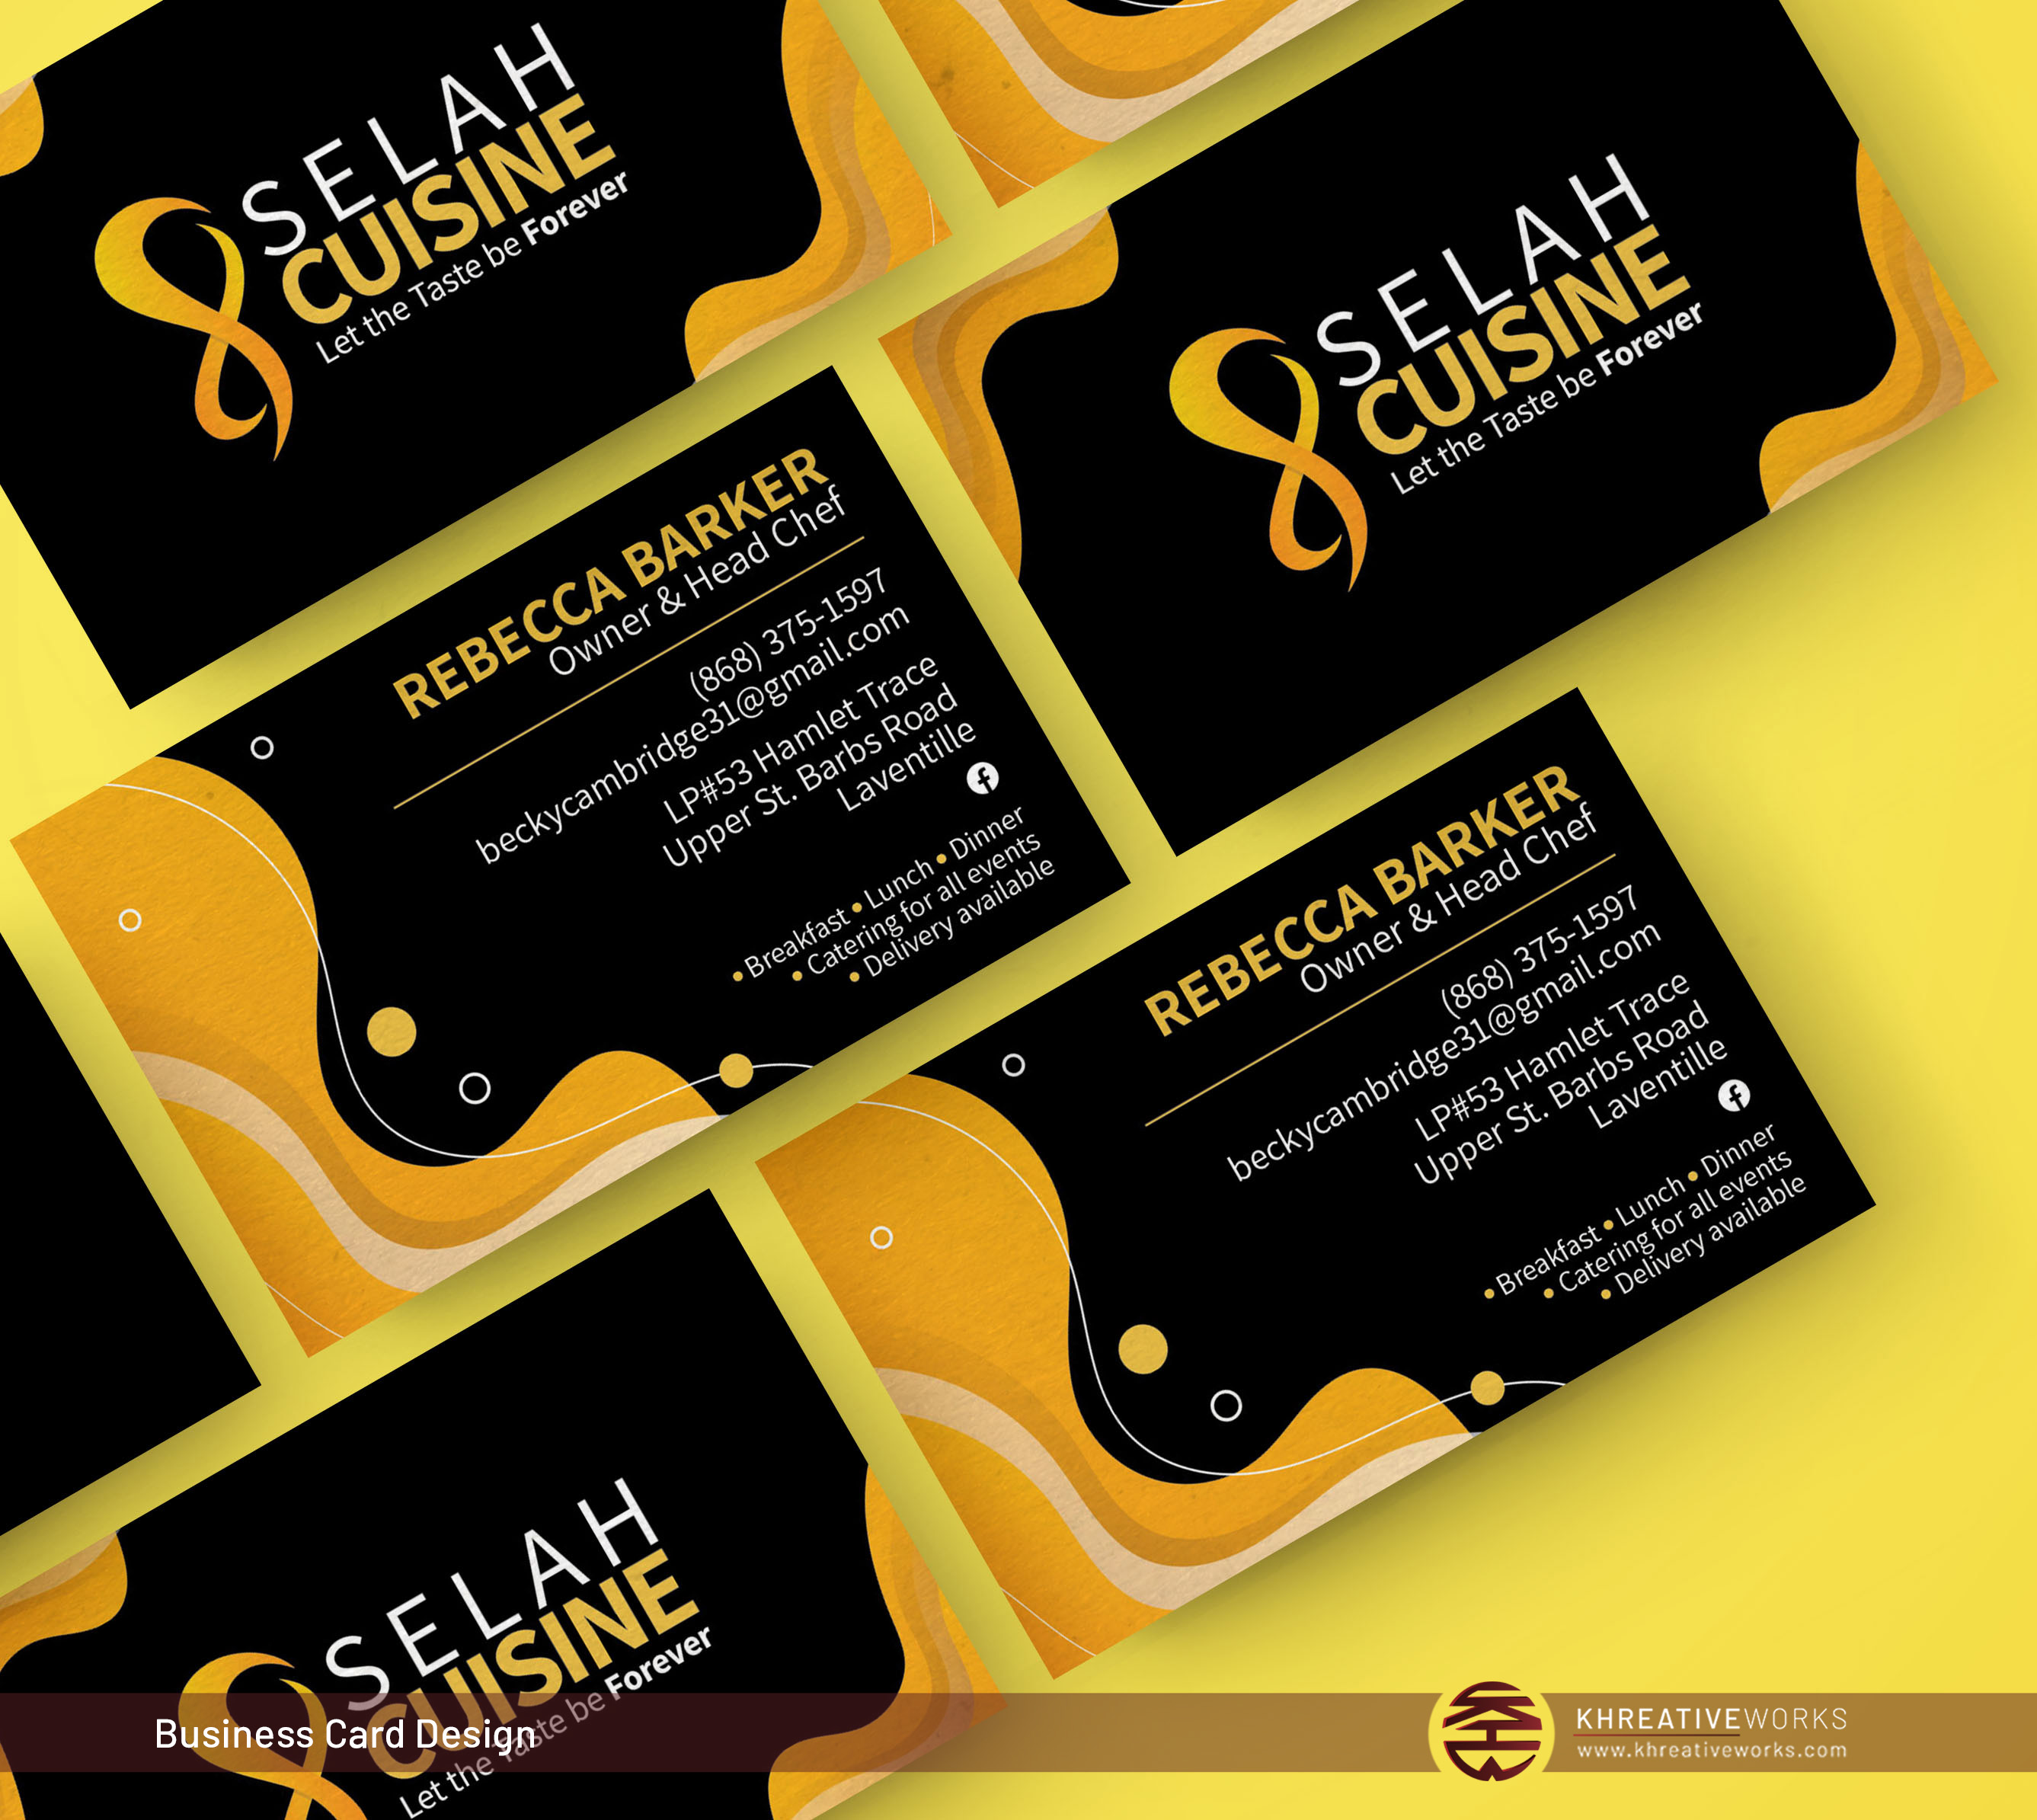 Business Cards for Selah Cuisine